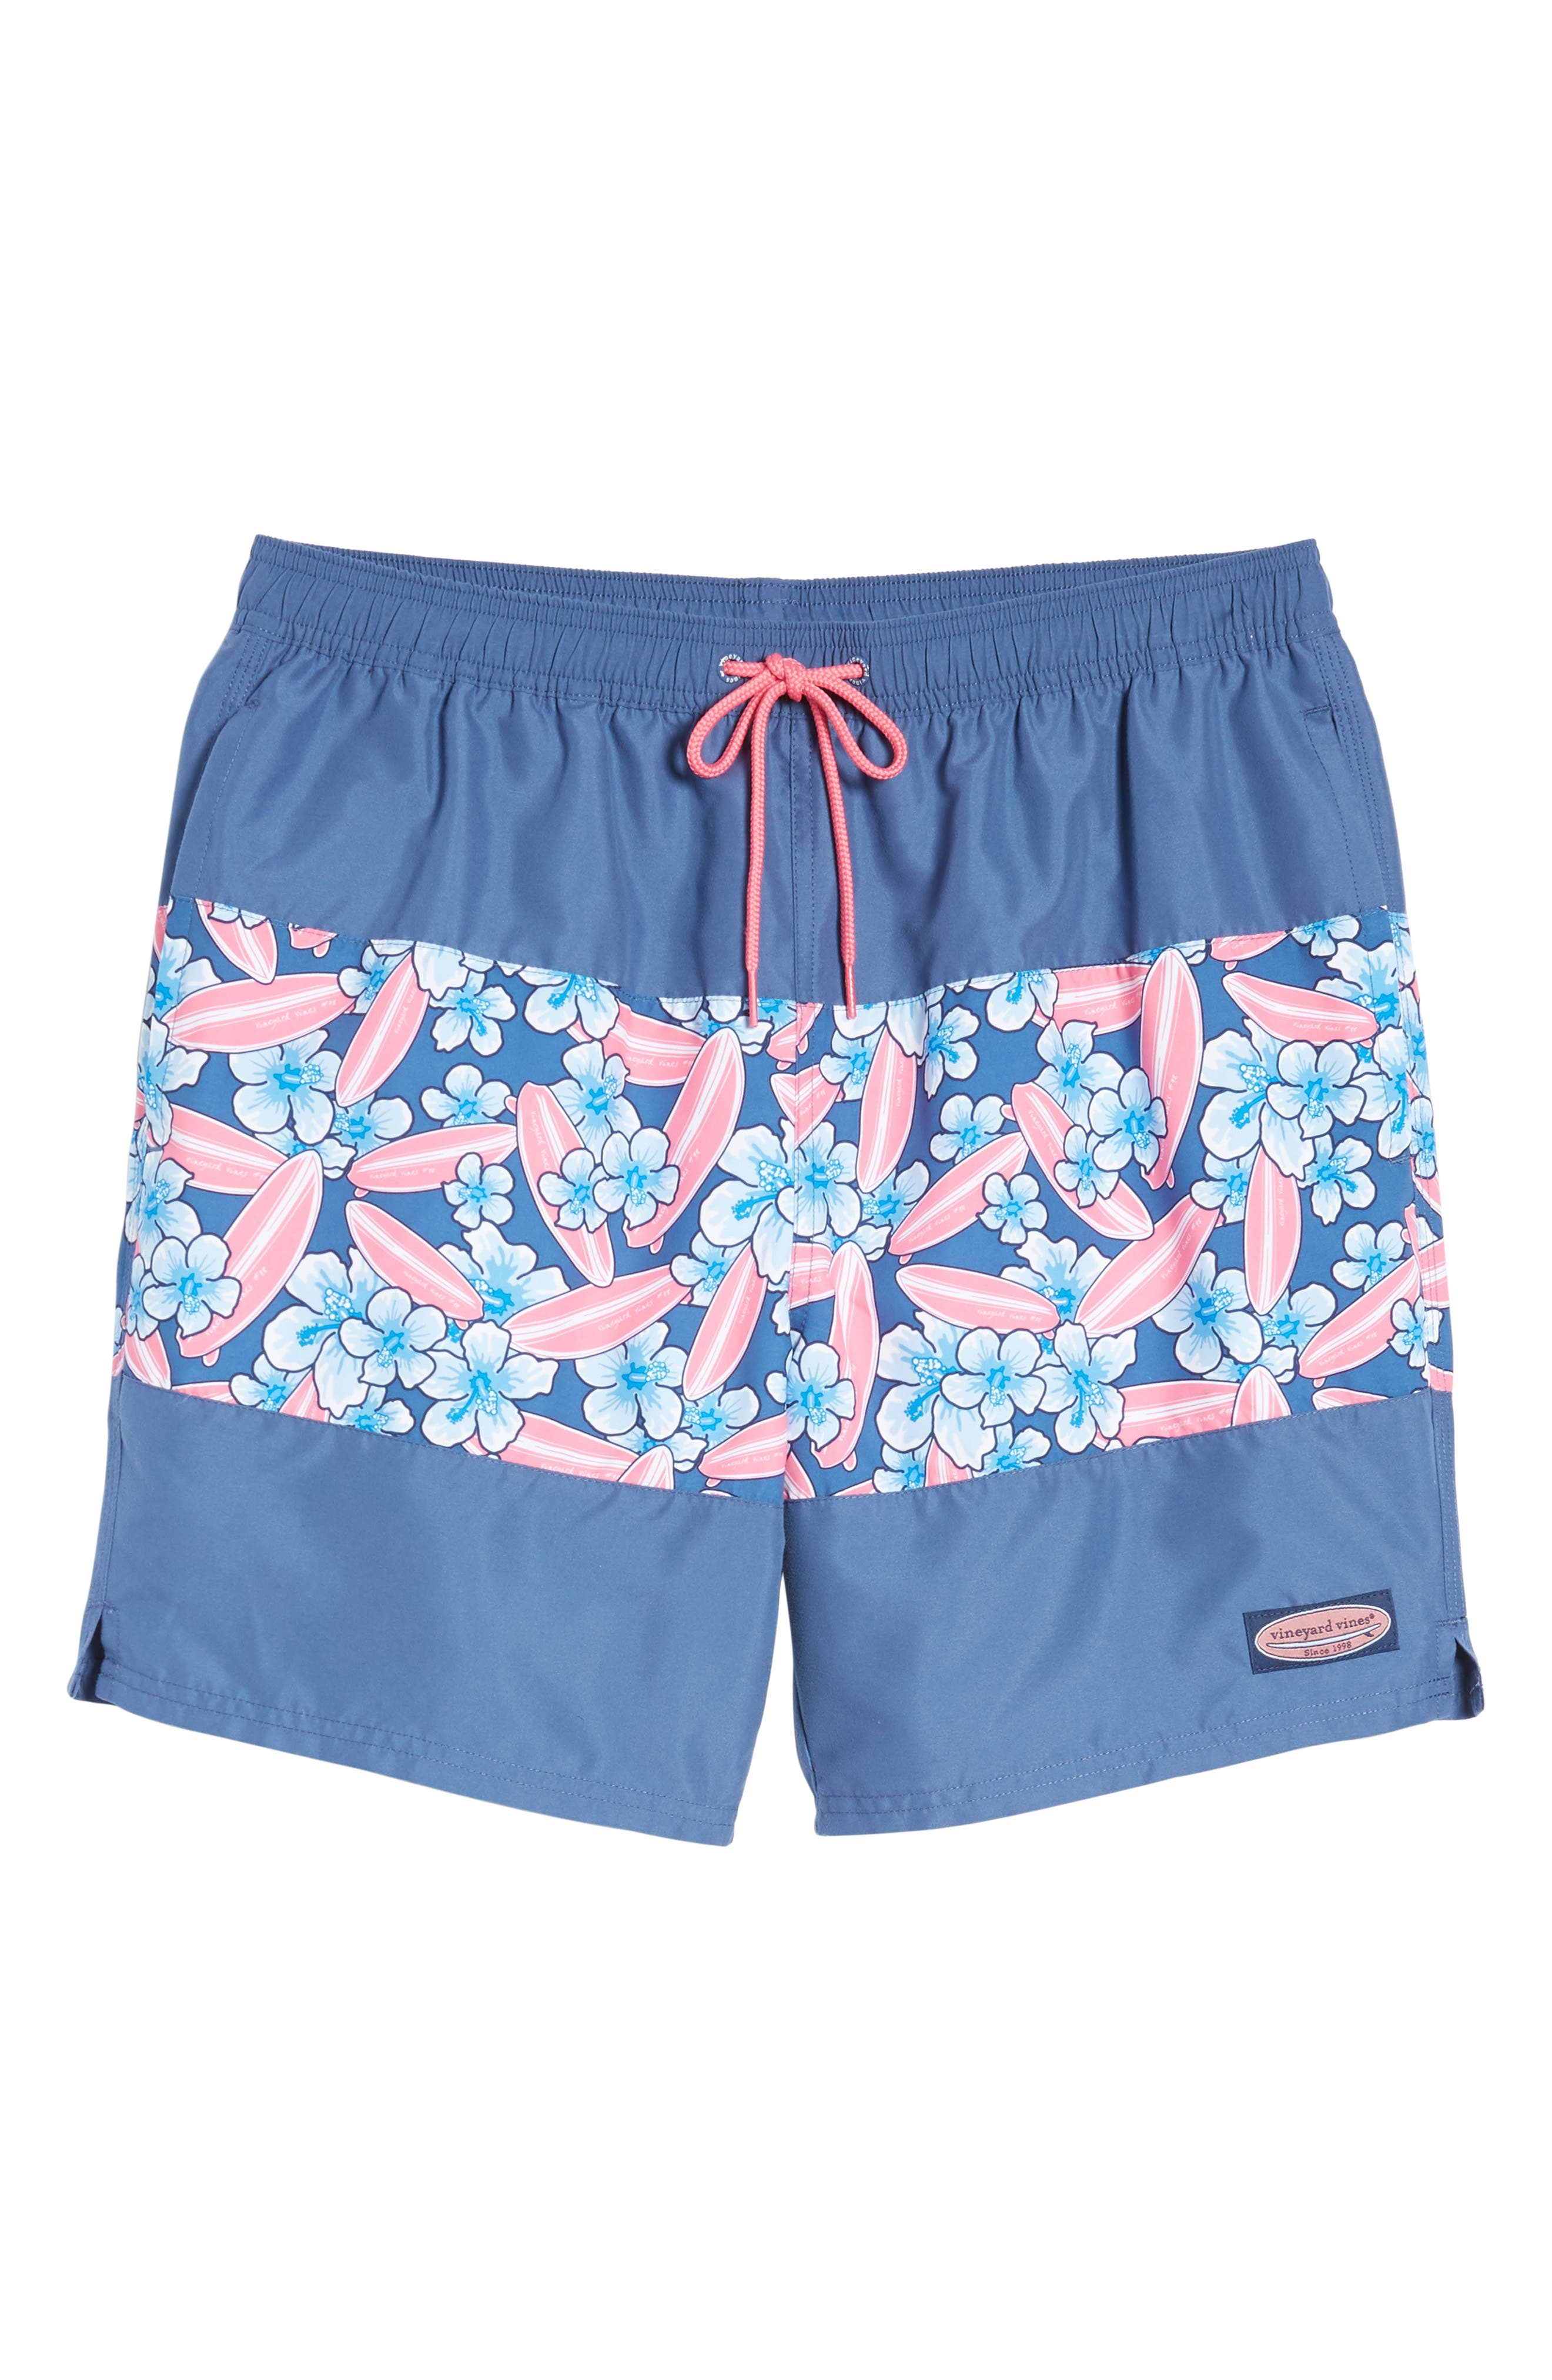 Chappy Pieced Surfboard Swim Trunks,                             Alternate thumbnail 6, color,                             461